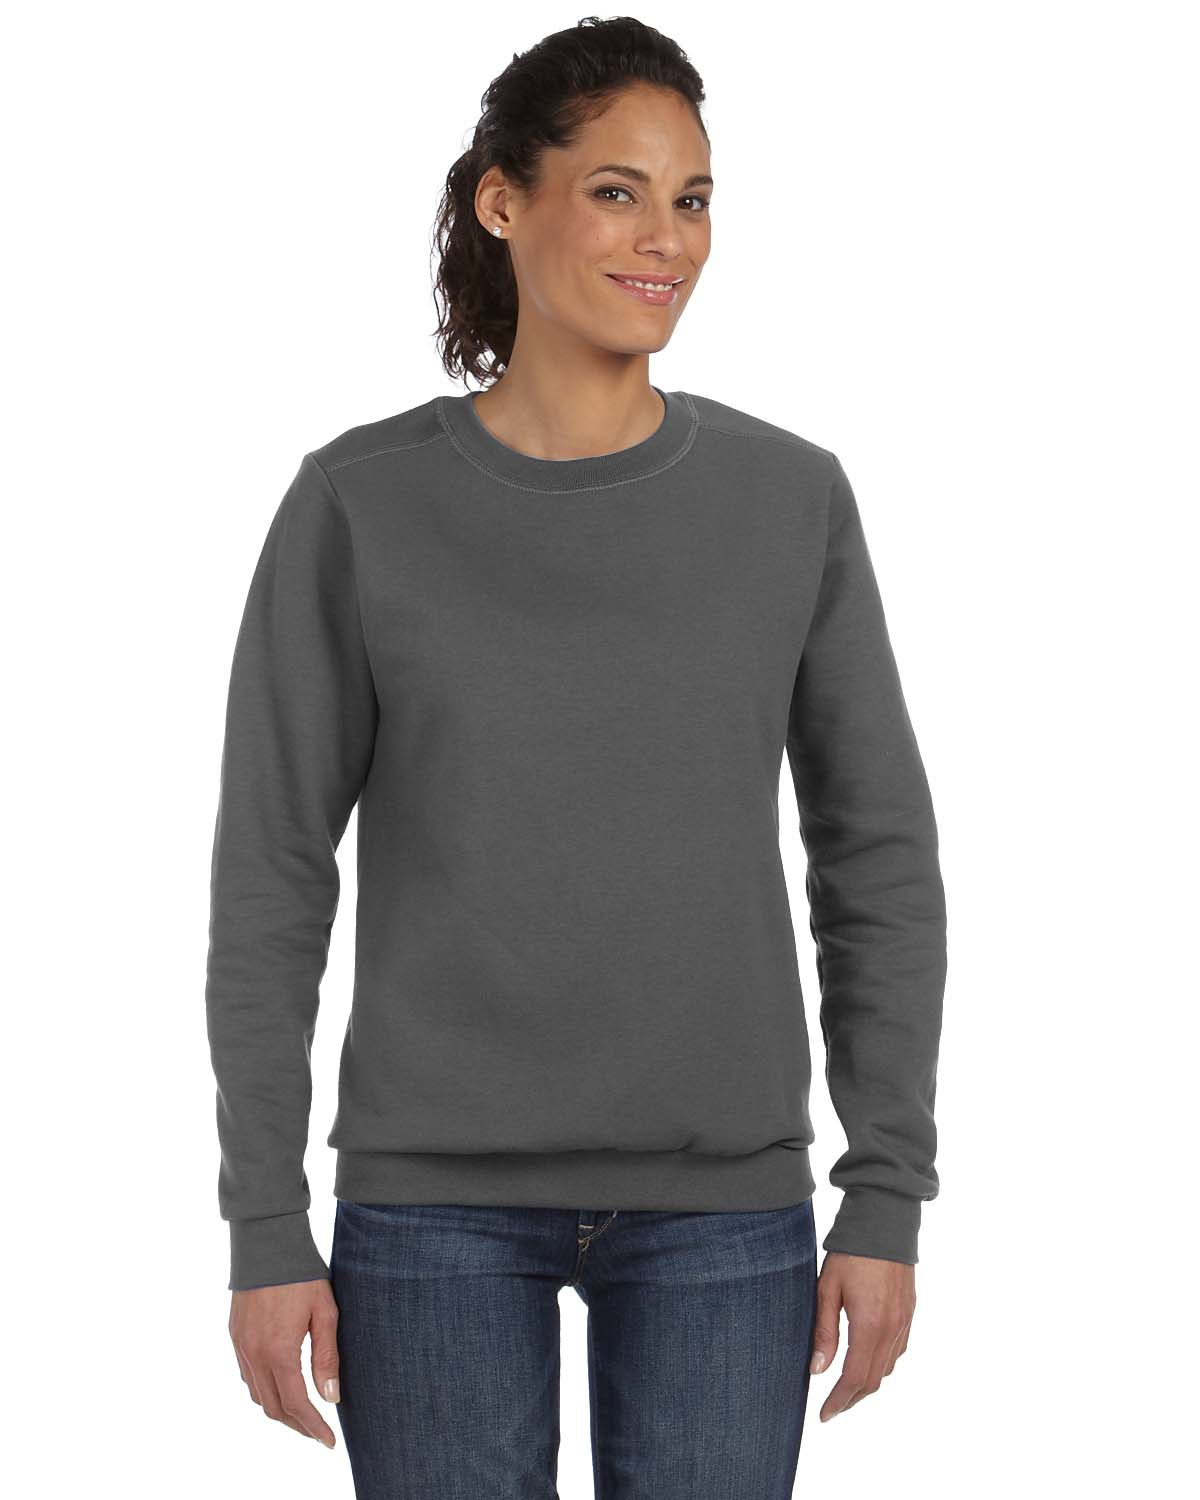 Anvil 71000L - Ladies' Crewneck Fleece